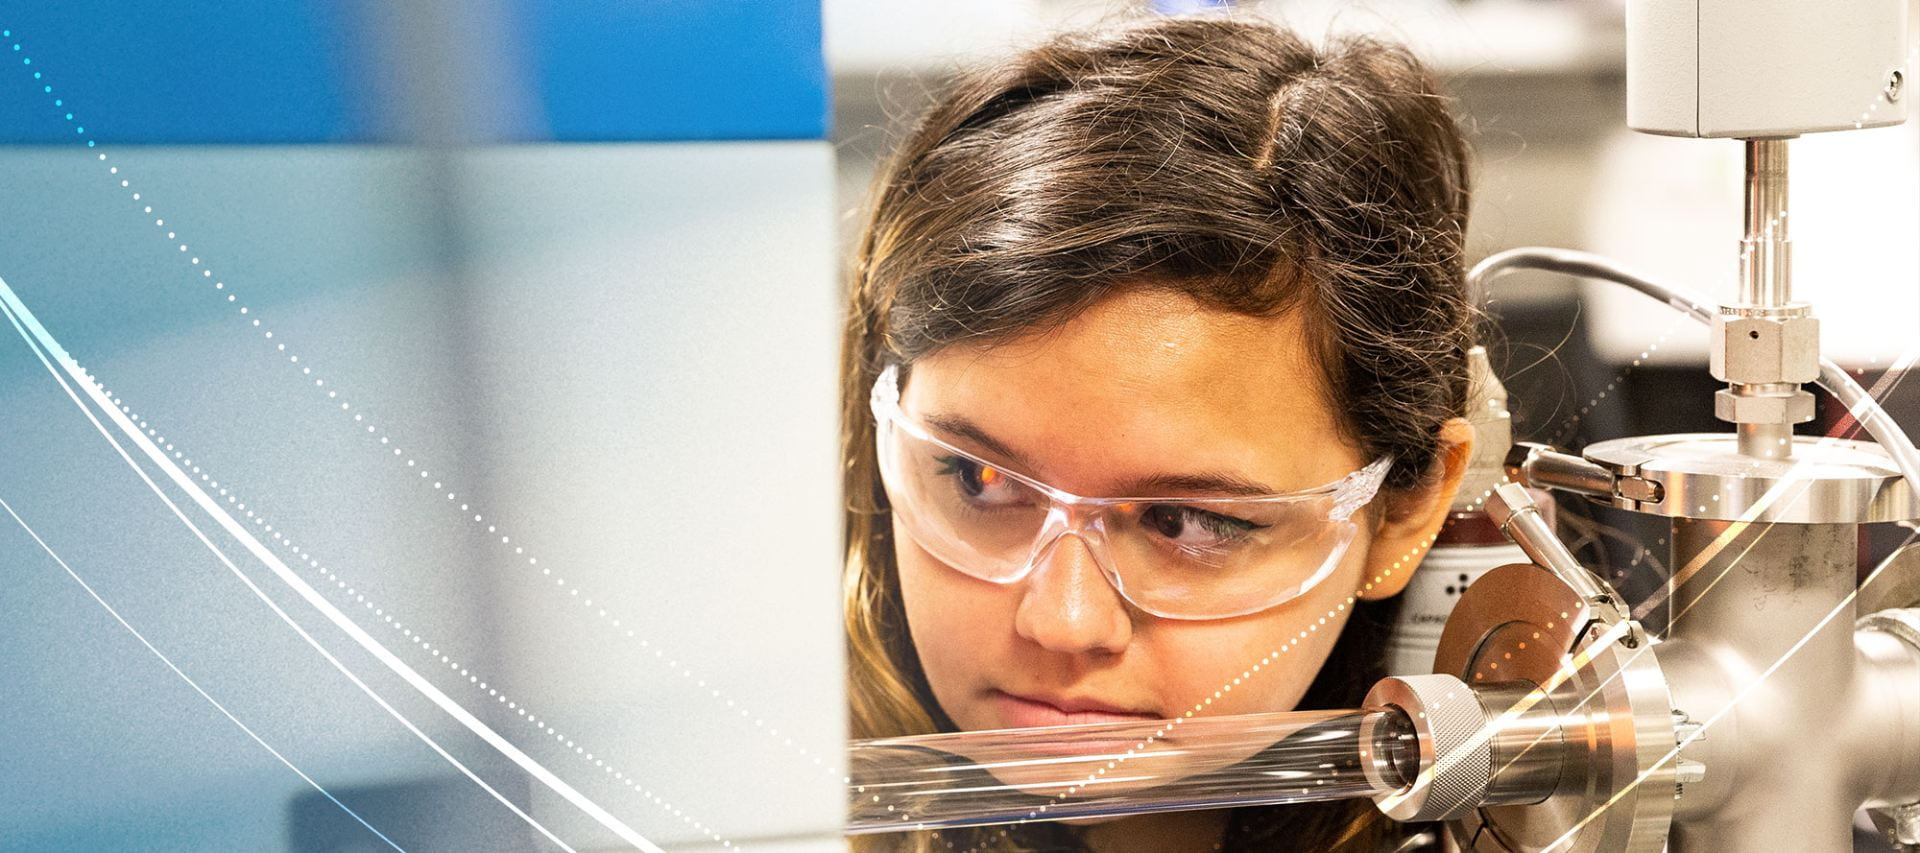 Penn State student, Ana De La Fuente Duran looks through a heating element in a piece of lab equipment.